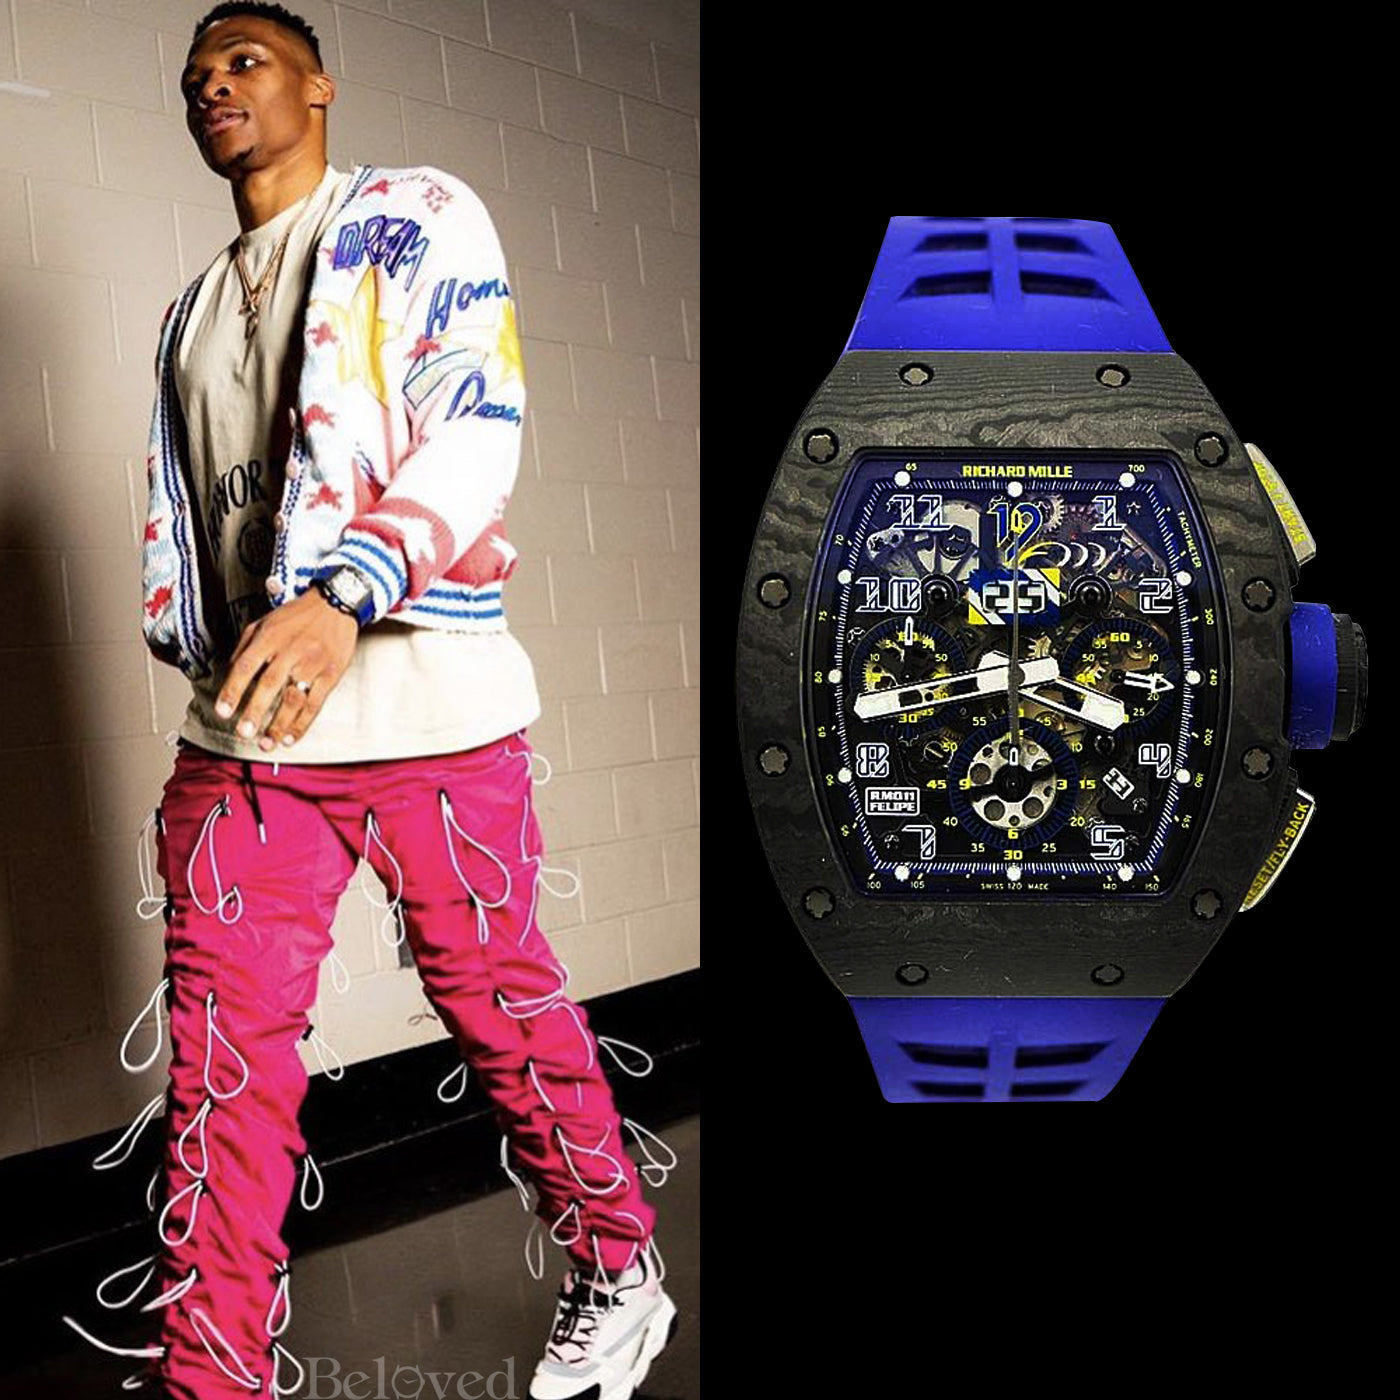 Russel Westbrook wearing a Richard Mille RM011 Felipe Massa NTPT 10th Anniversary Limited Edition in Titanium on Blue Strap